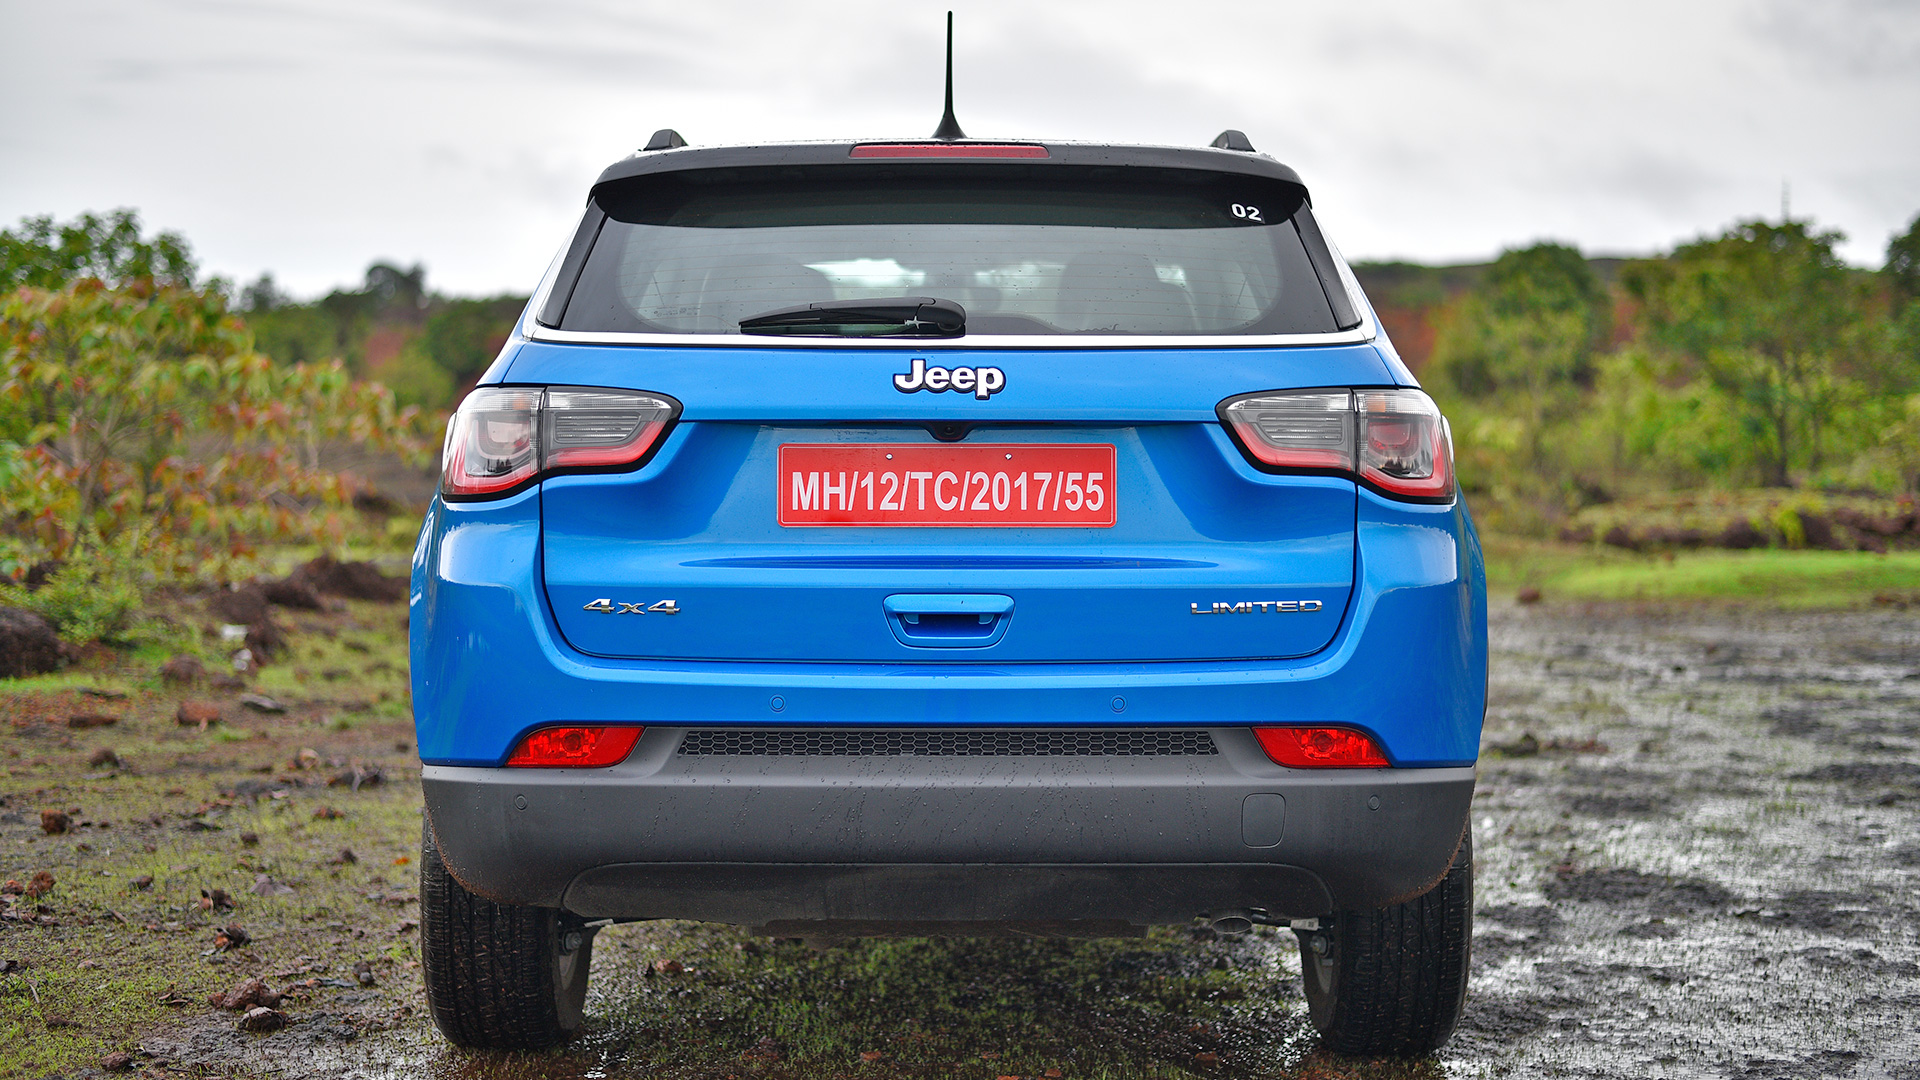 Jeep Compass 2017 Limited Diesel 4x4 Compare